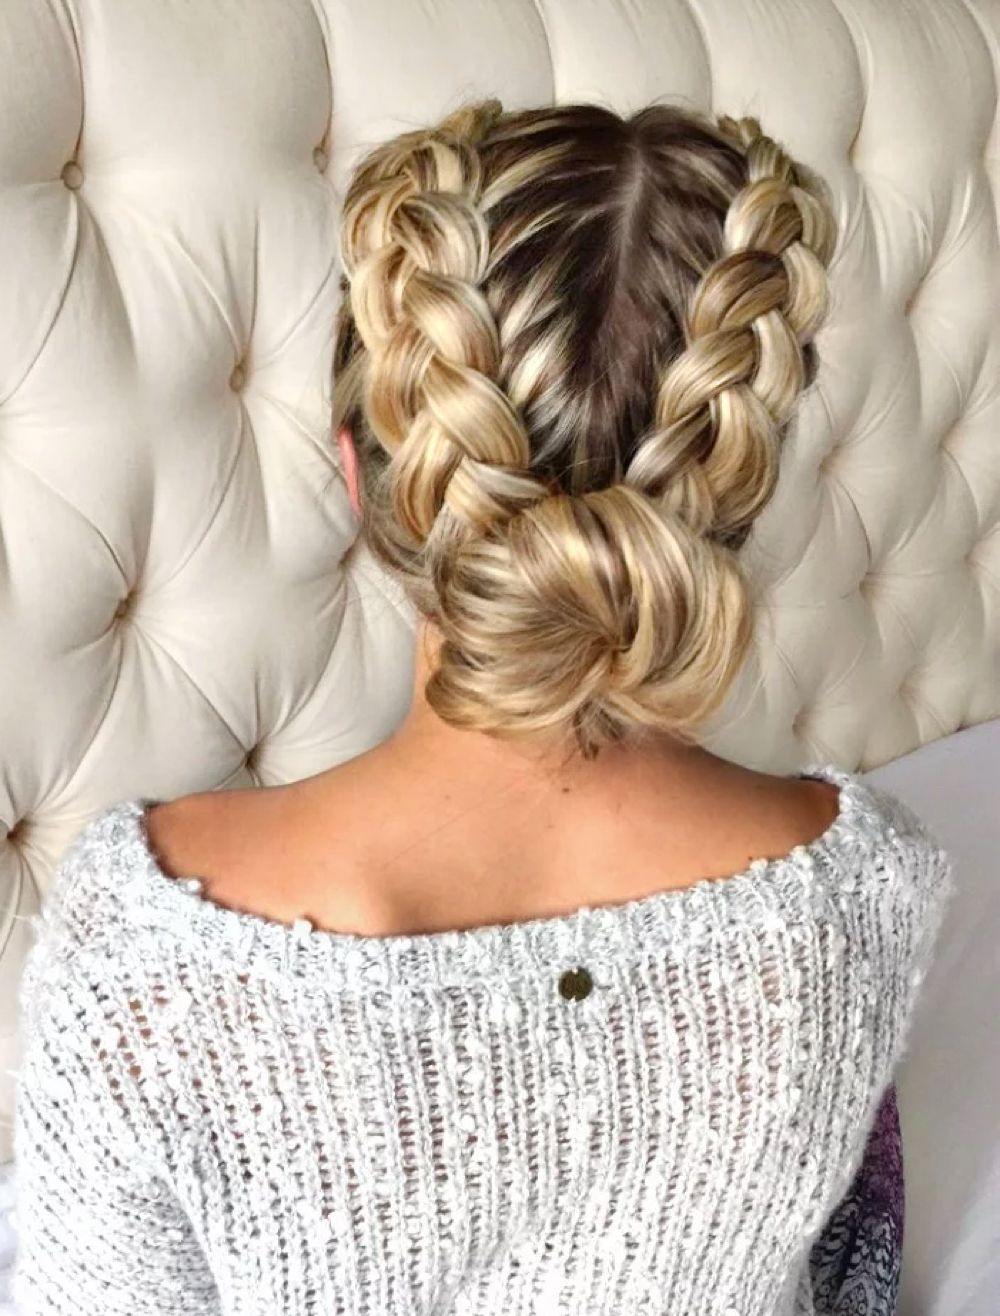 17 Stately Braided Hairstyles Bridesmaid Loose Updo With Dignity -   11 hair Updos everyday ideas